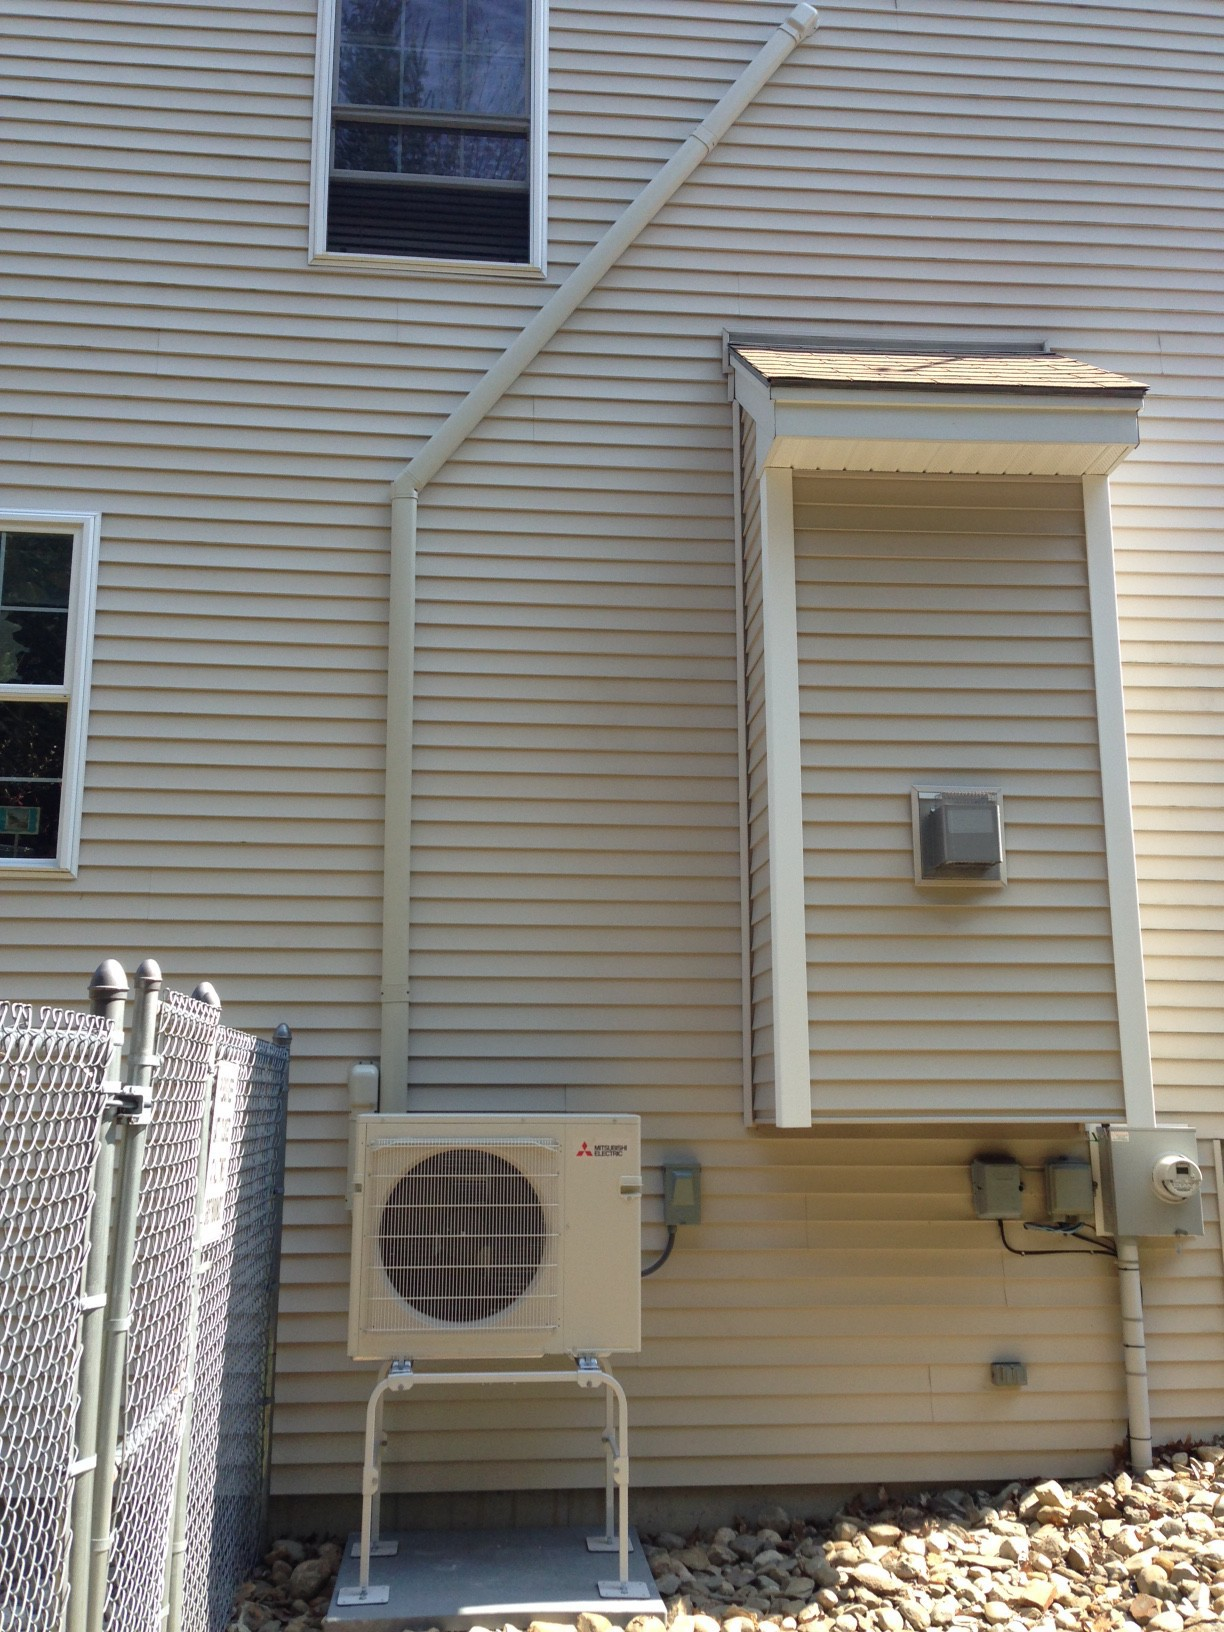 Mitsubishi Mini Split Heat Pump Installation Buxton Maine